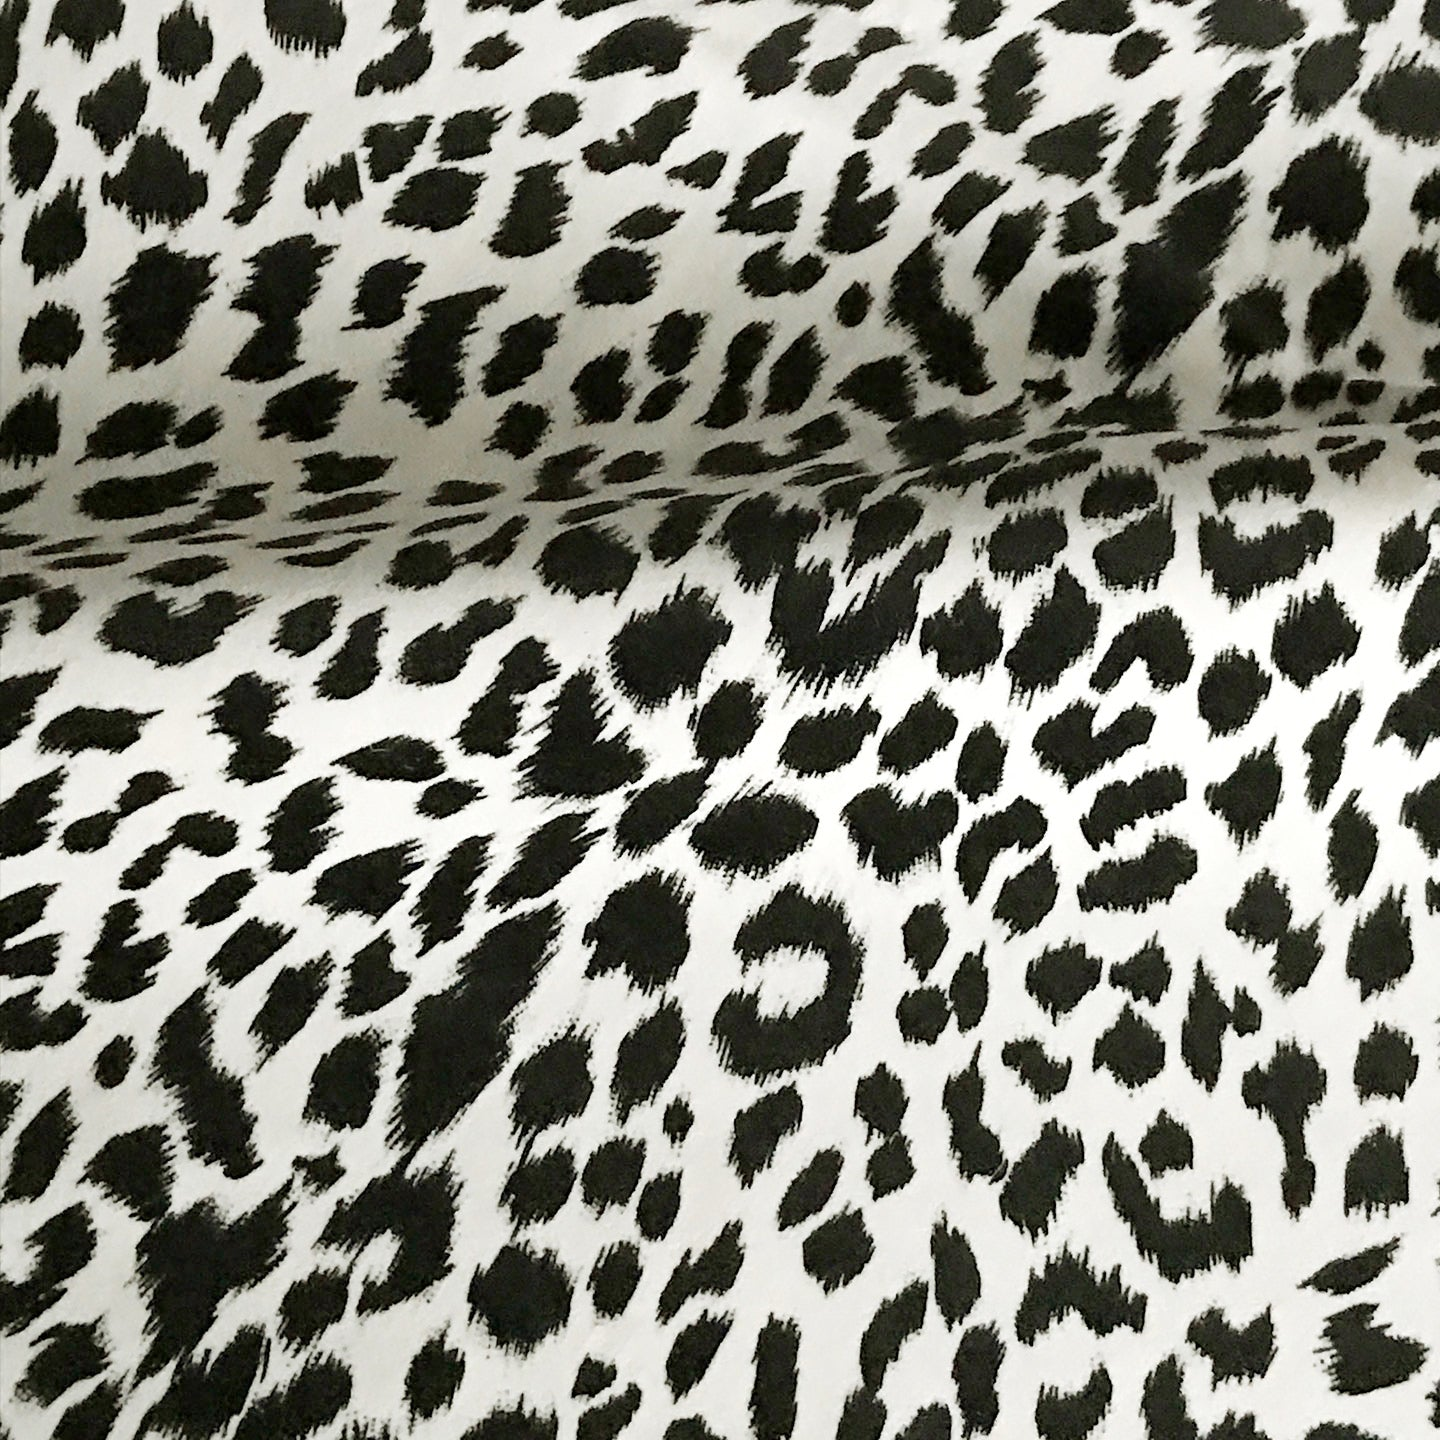 Cheetah Print Black White Velvet Upholstery Fabric